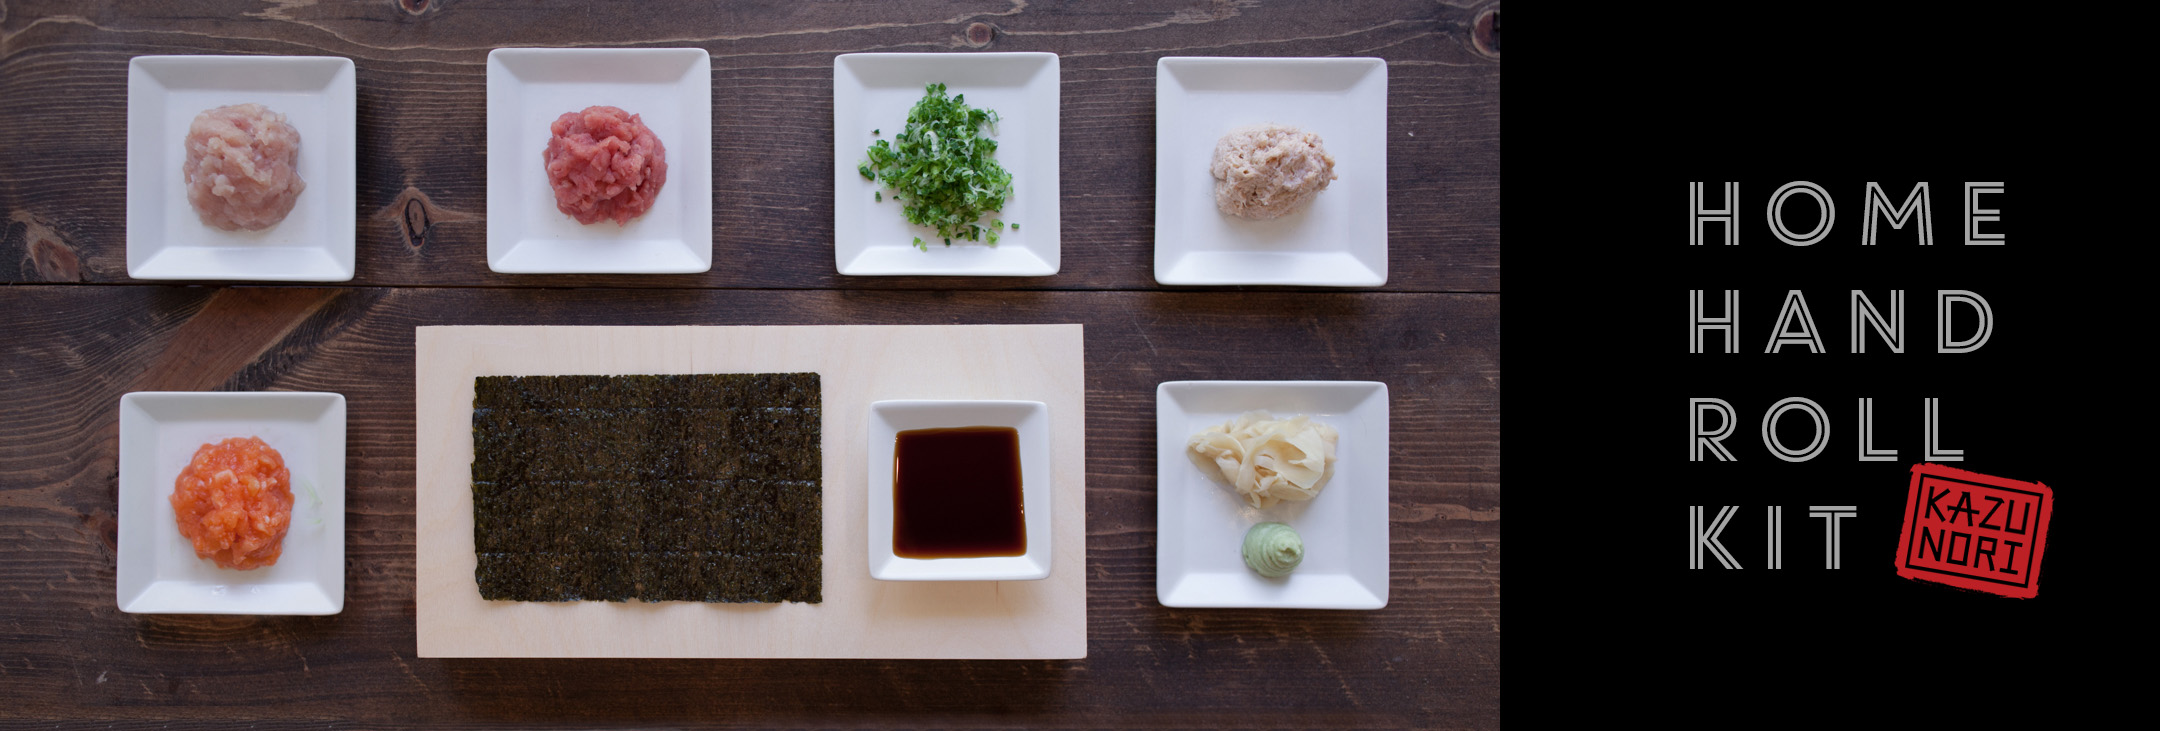 Hand roll kit ingredients on white dishes